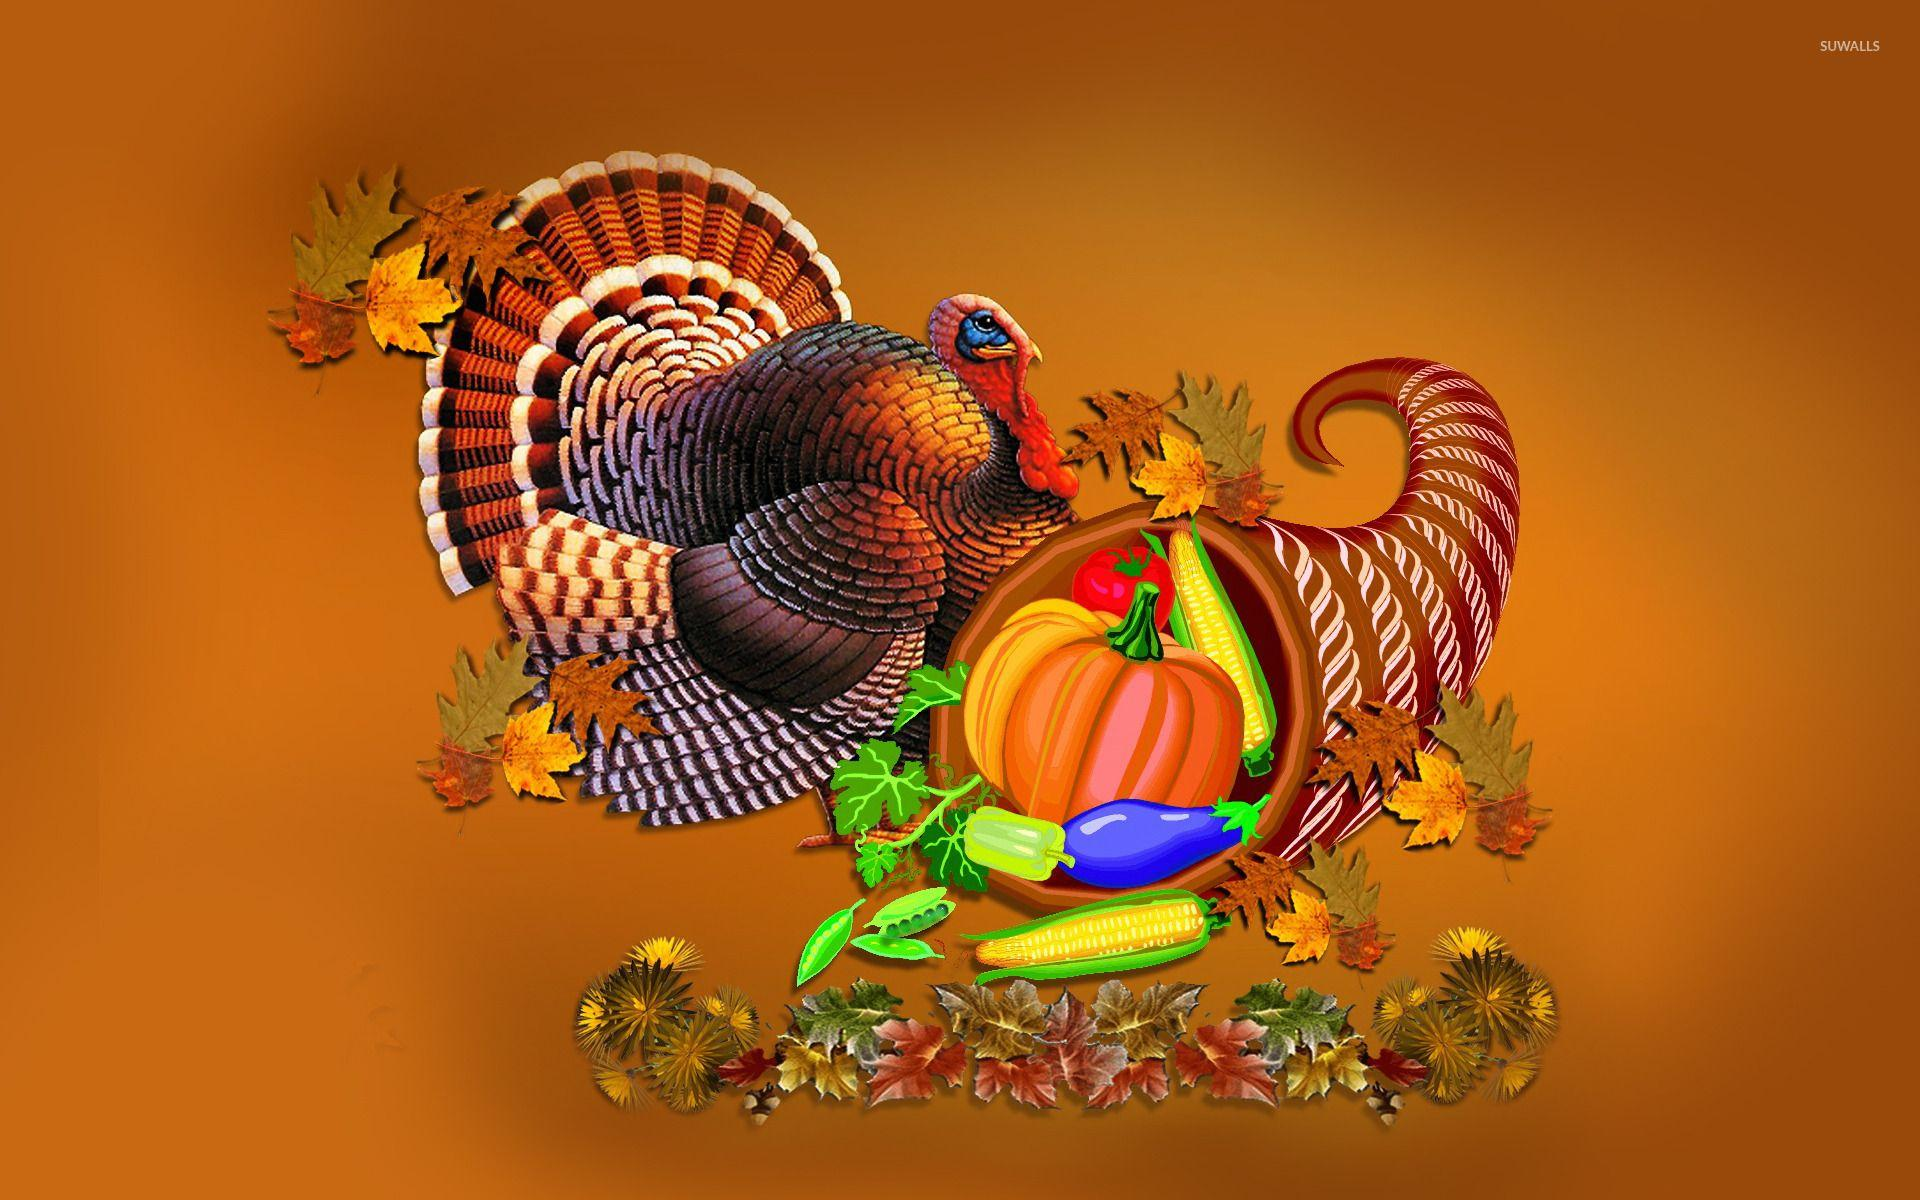 Thanksgiving turkey and cornucopia wallpaper - Holiday wallpapers ...